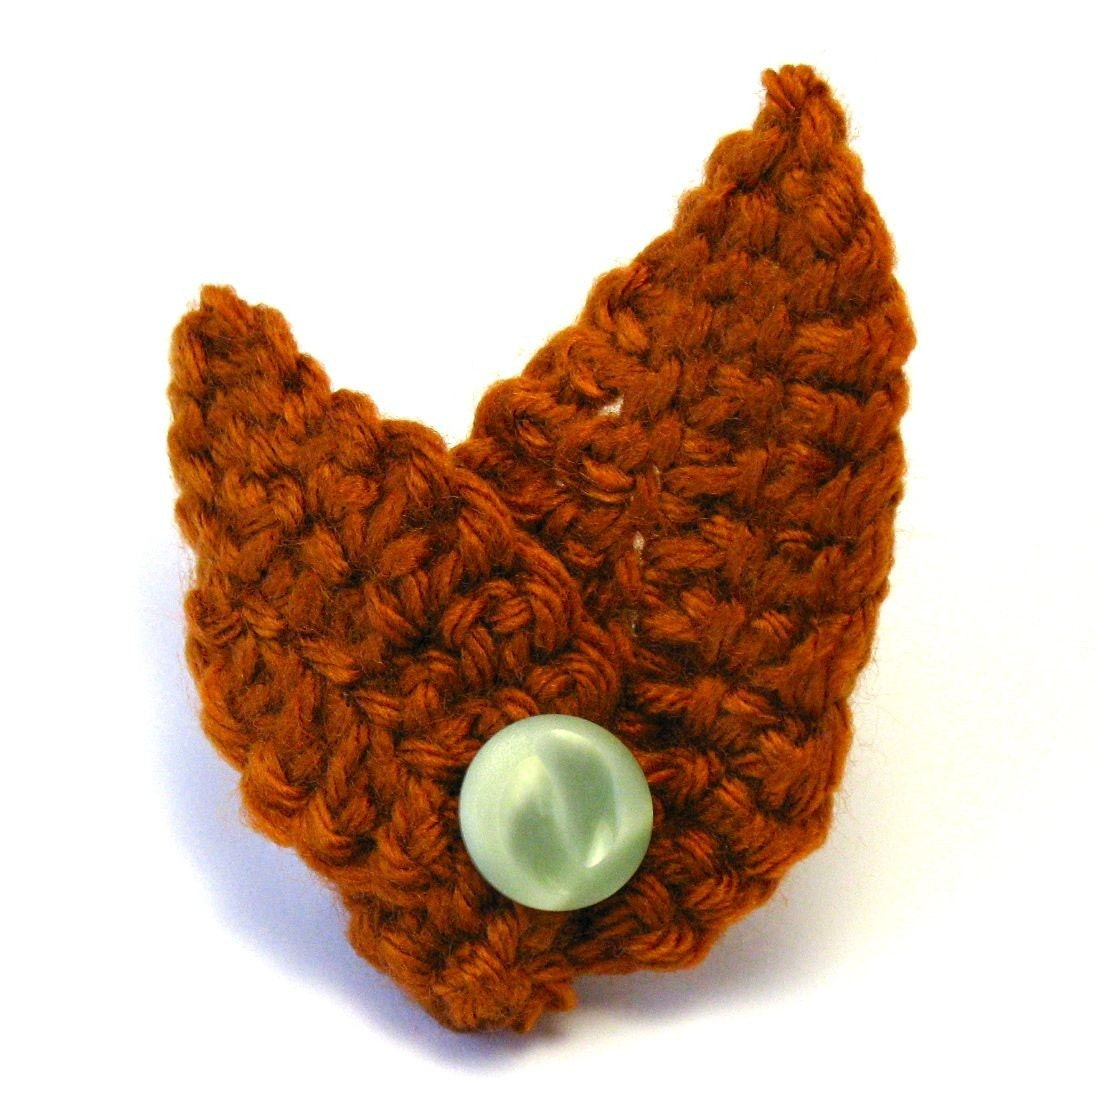 Crocheted Cozy Leaf Pin, Pumpkin with Vintage Green Button